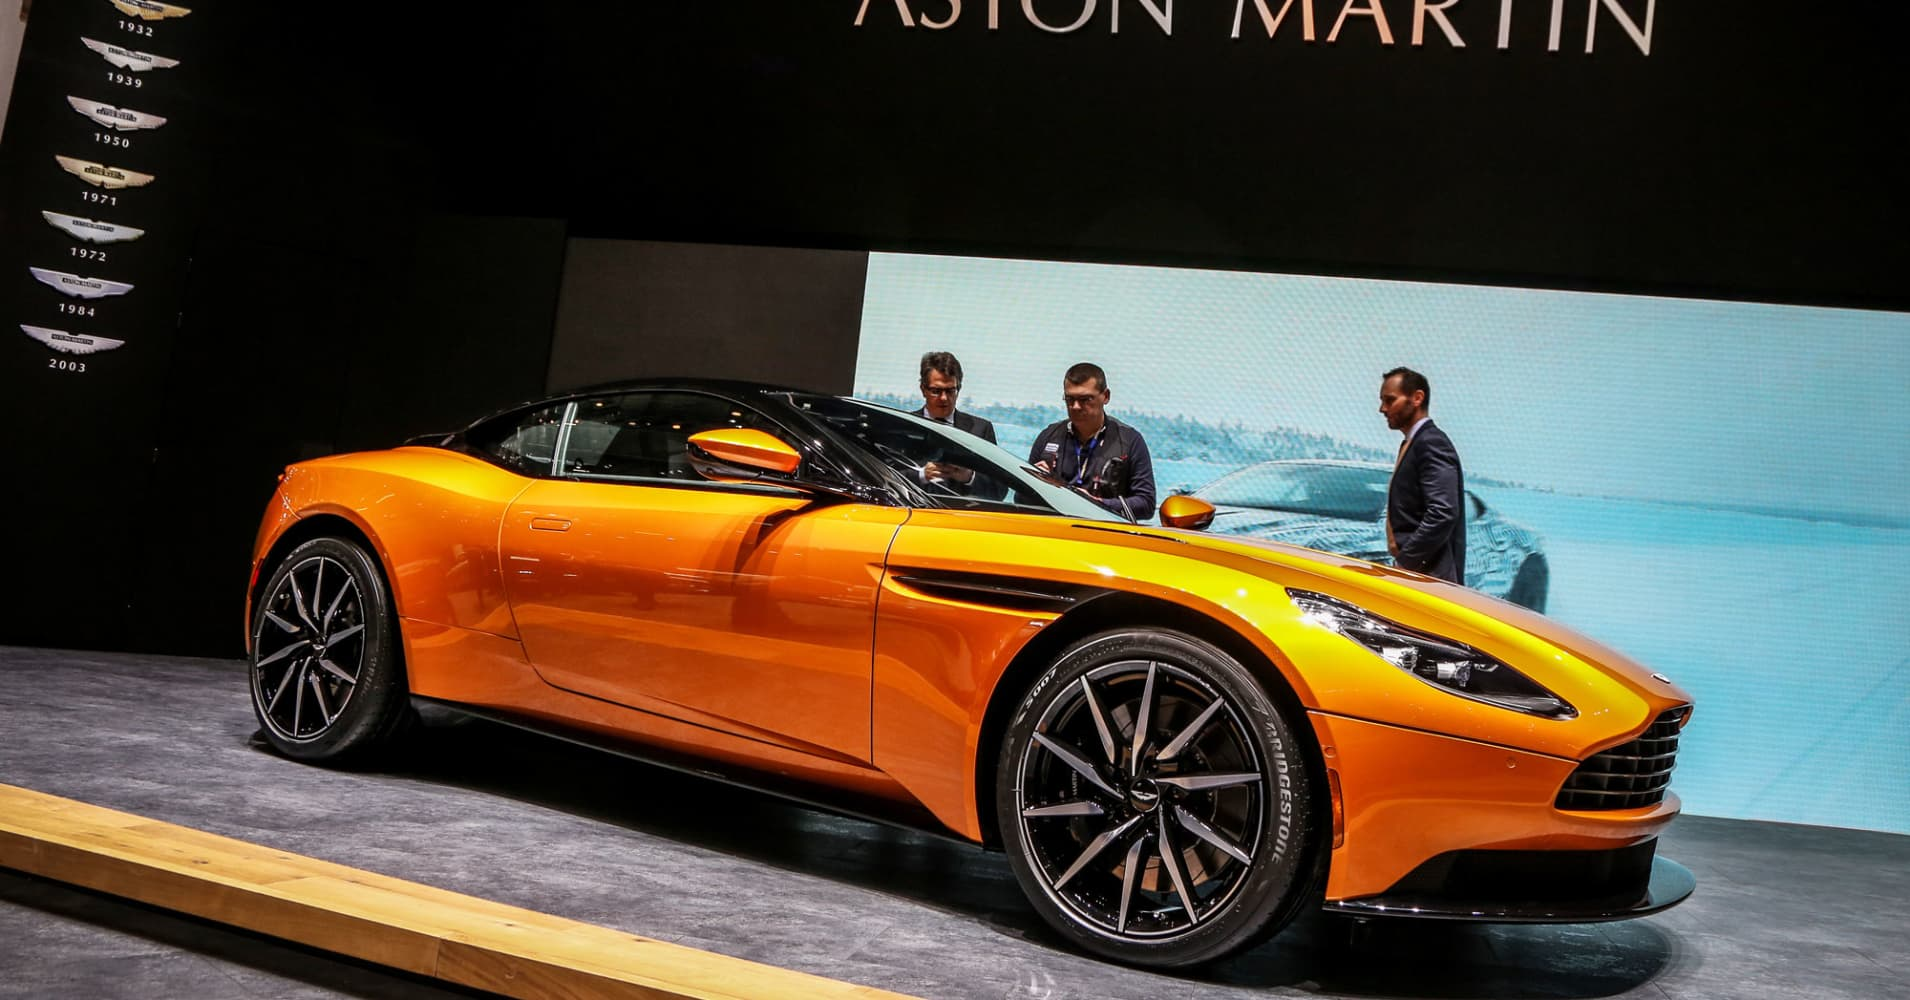 Aston Martin CEO: 'We've seen this explosion of growth in China'